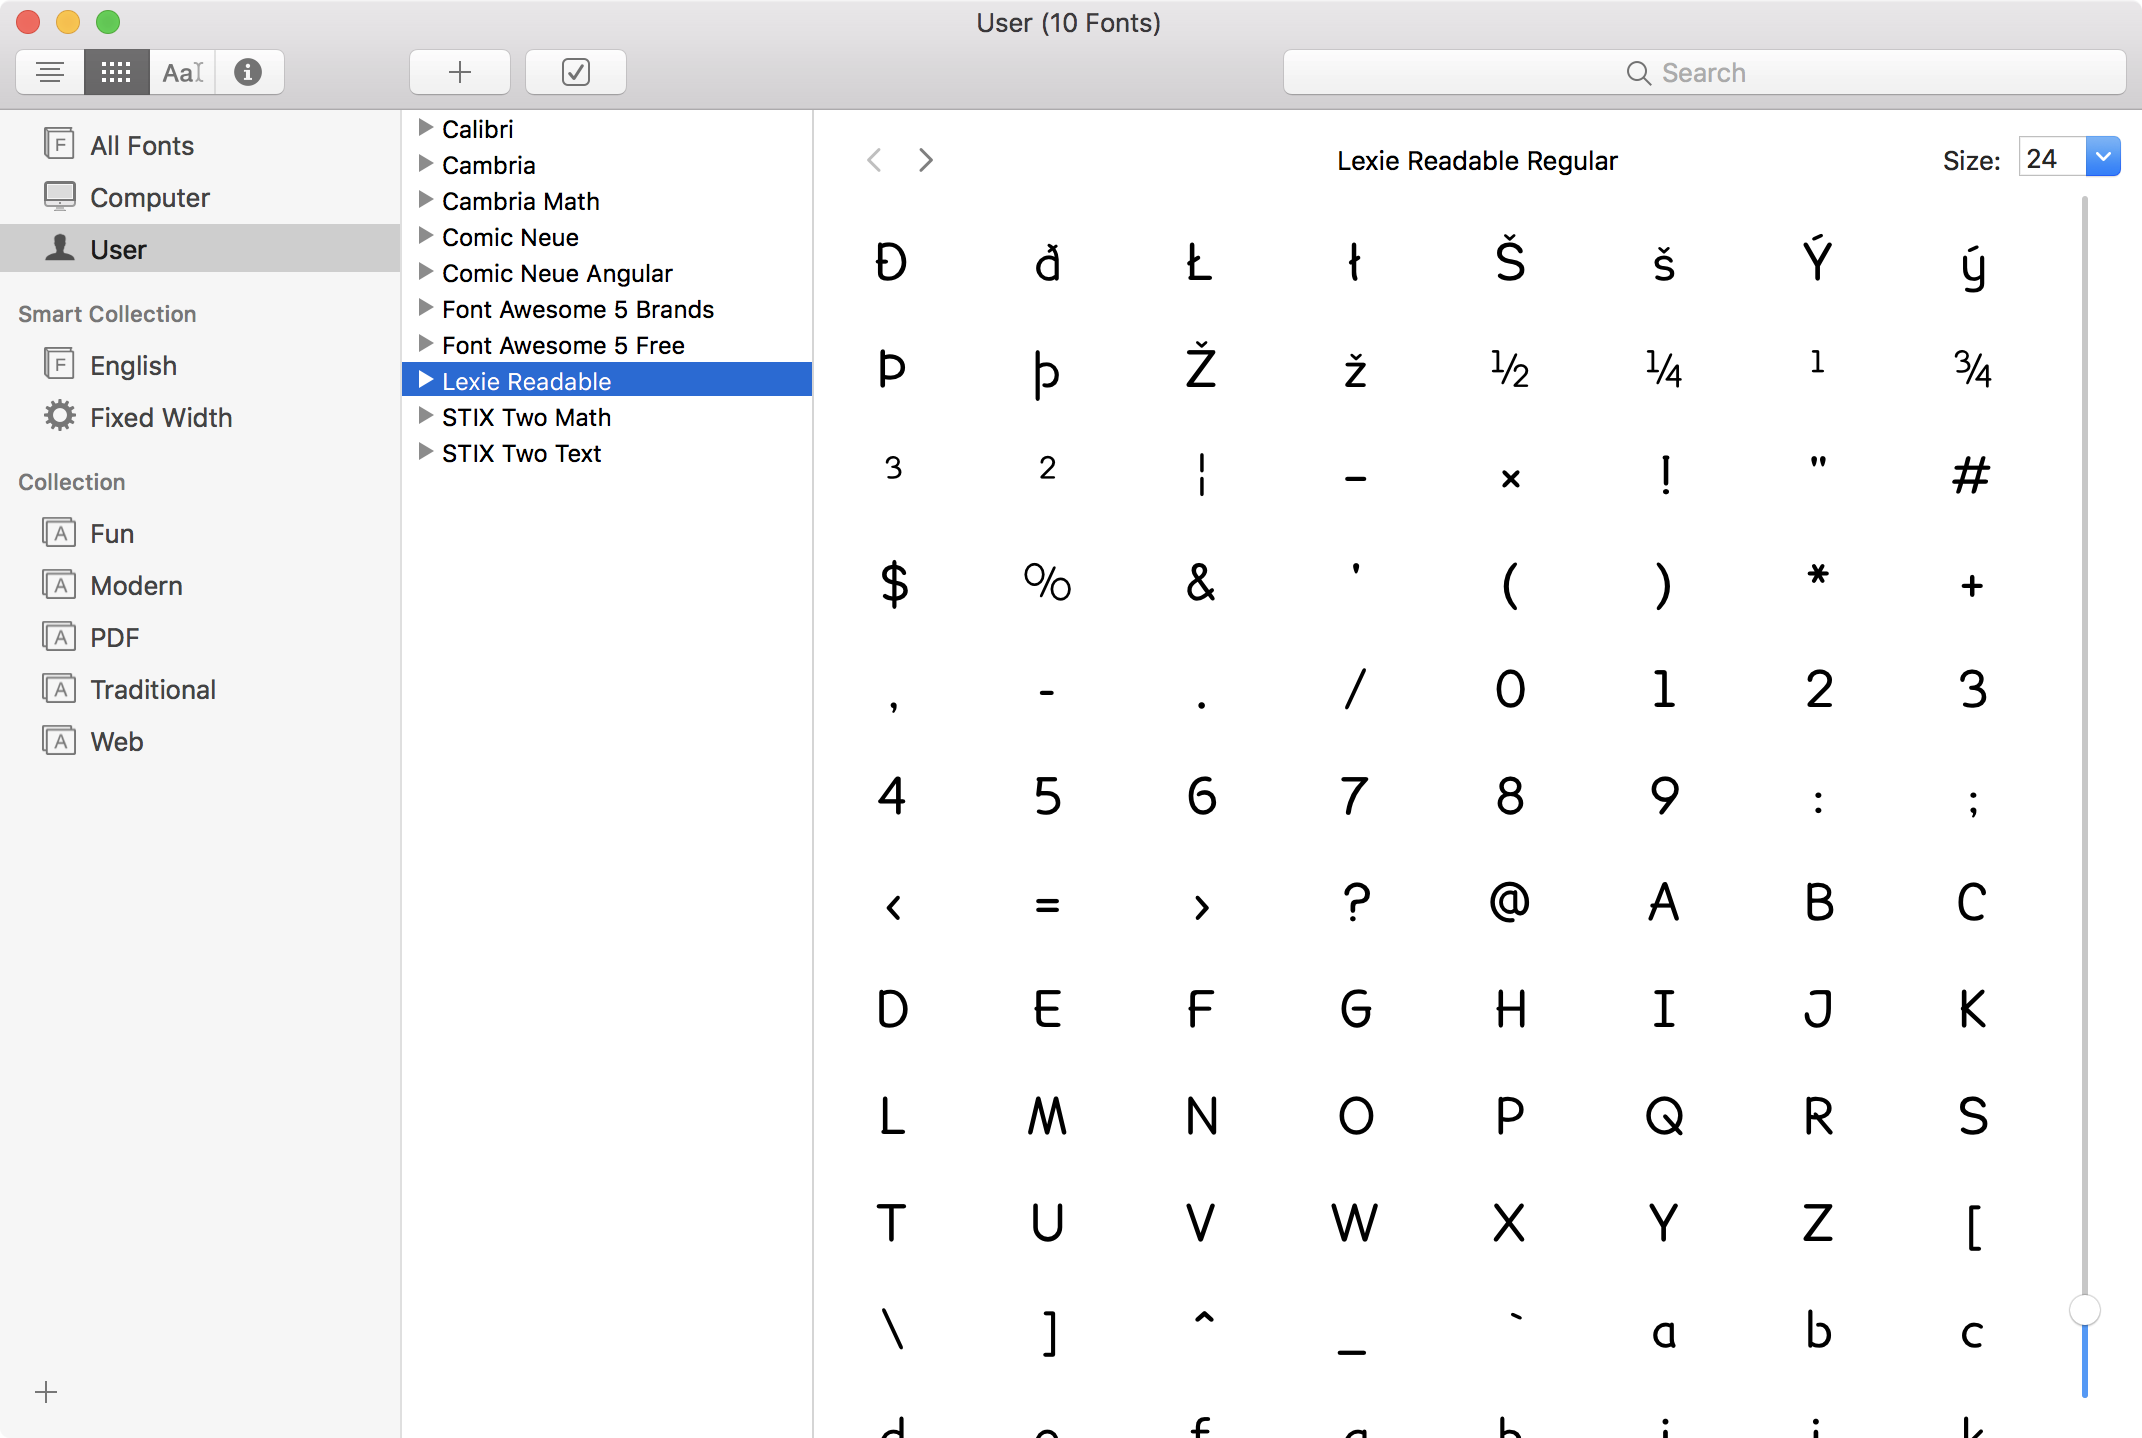 FA5 OFT font displaying poorly and incompletely in Mac Font